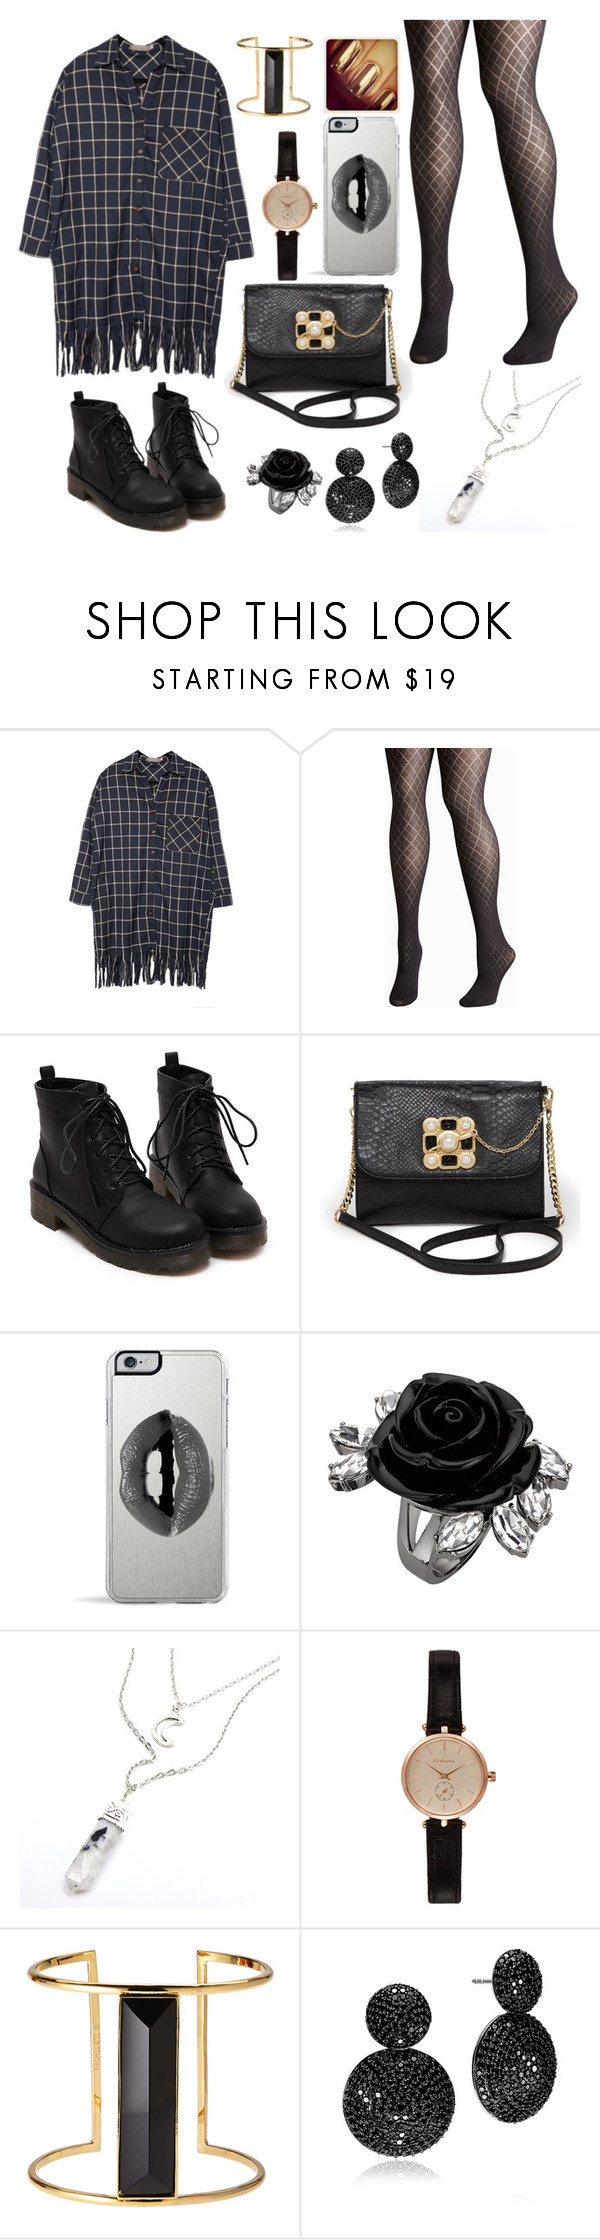 """""""Realistic"""" by puppydog28 ❤ liked on Polyvore featuring Avenue, Bebe, Lipsy, Barbour and Rachel Zoe"""